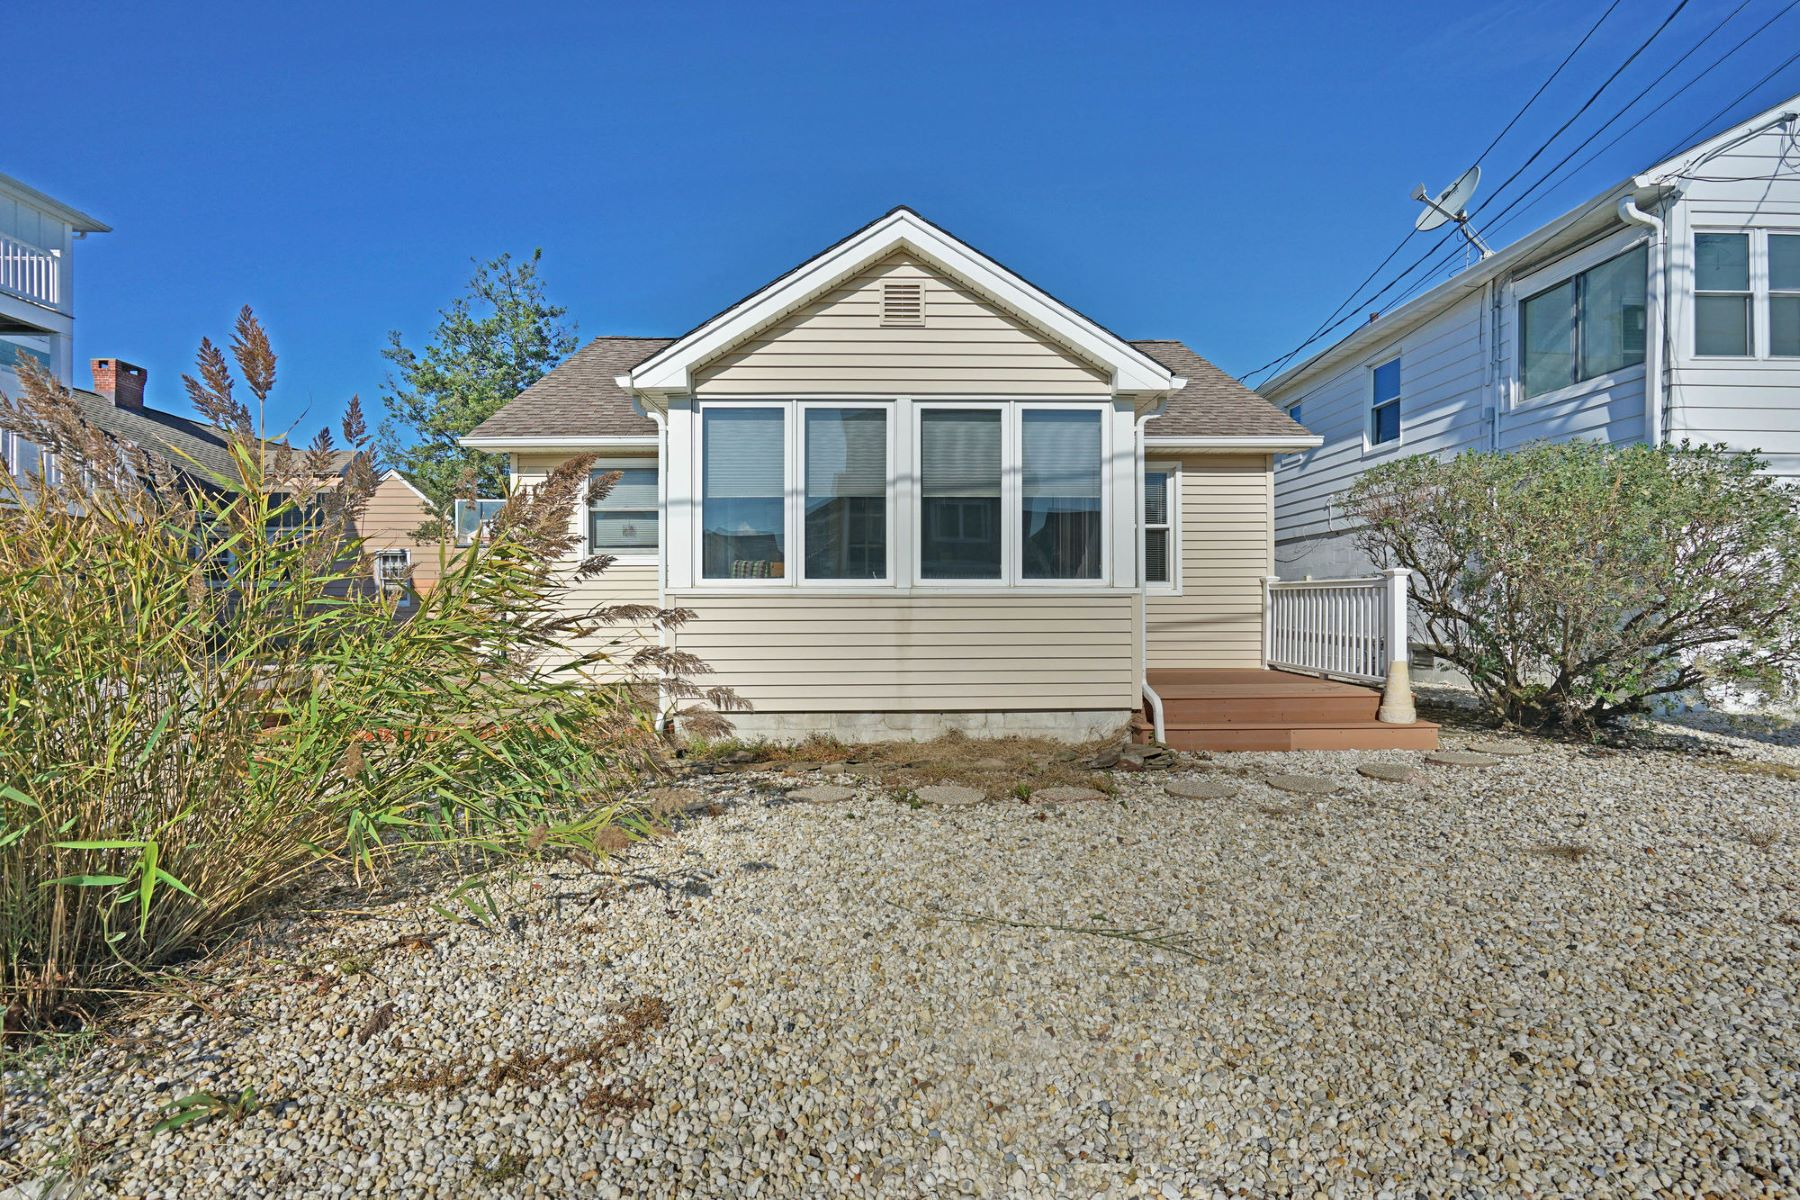 Single Family Homes for Sale at Manasquan Getaway 7 Meadow Avenue Manasquan, New Jersey 08736 United States